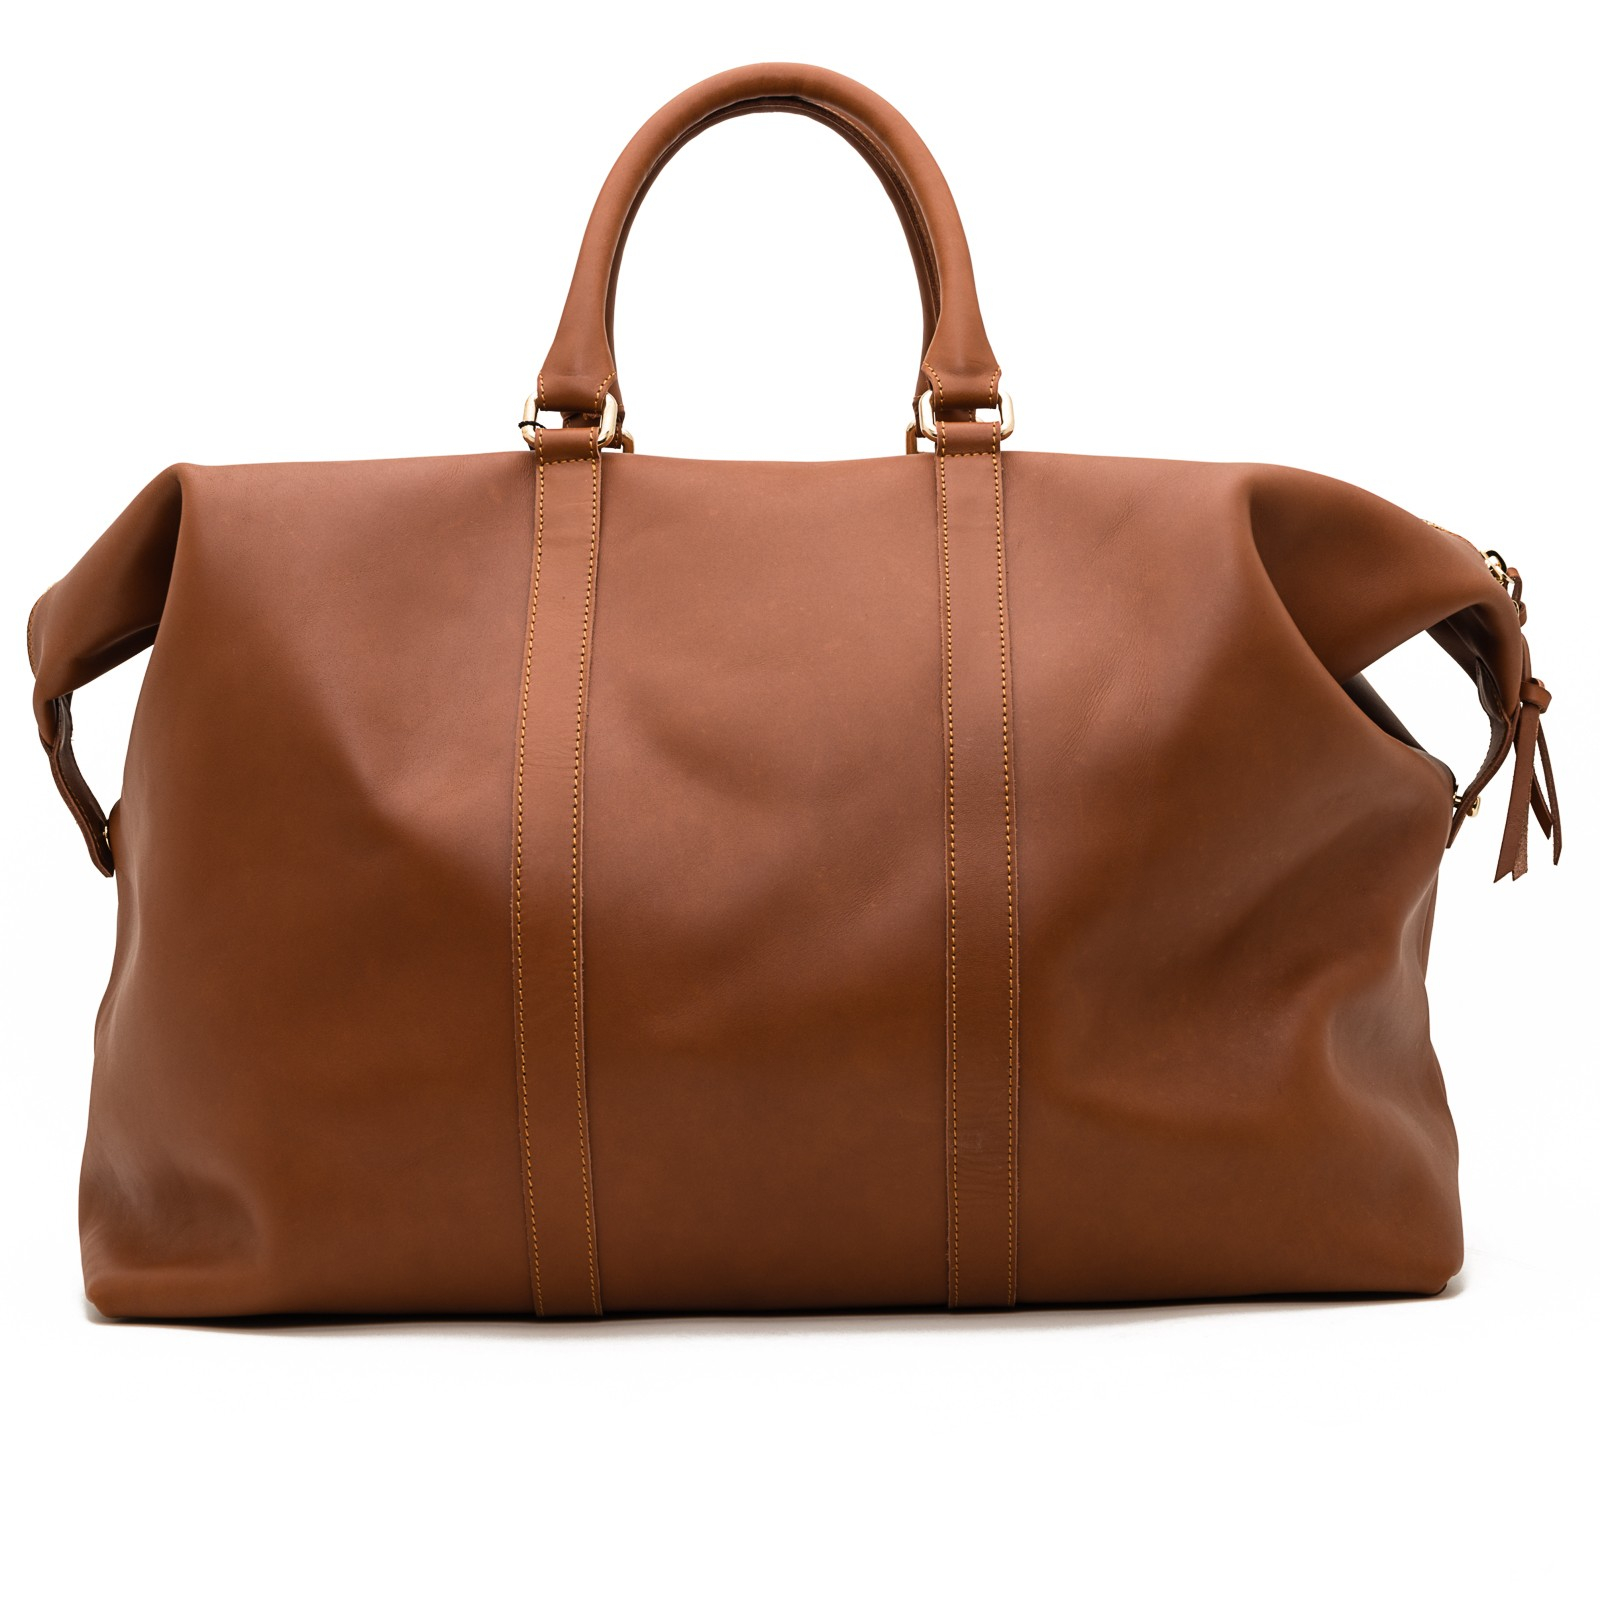 leather weekend bags for men - photo #3